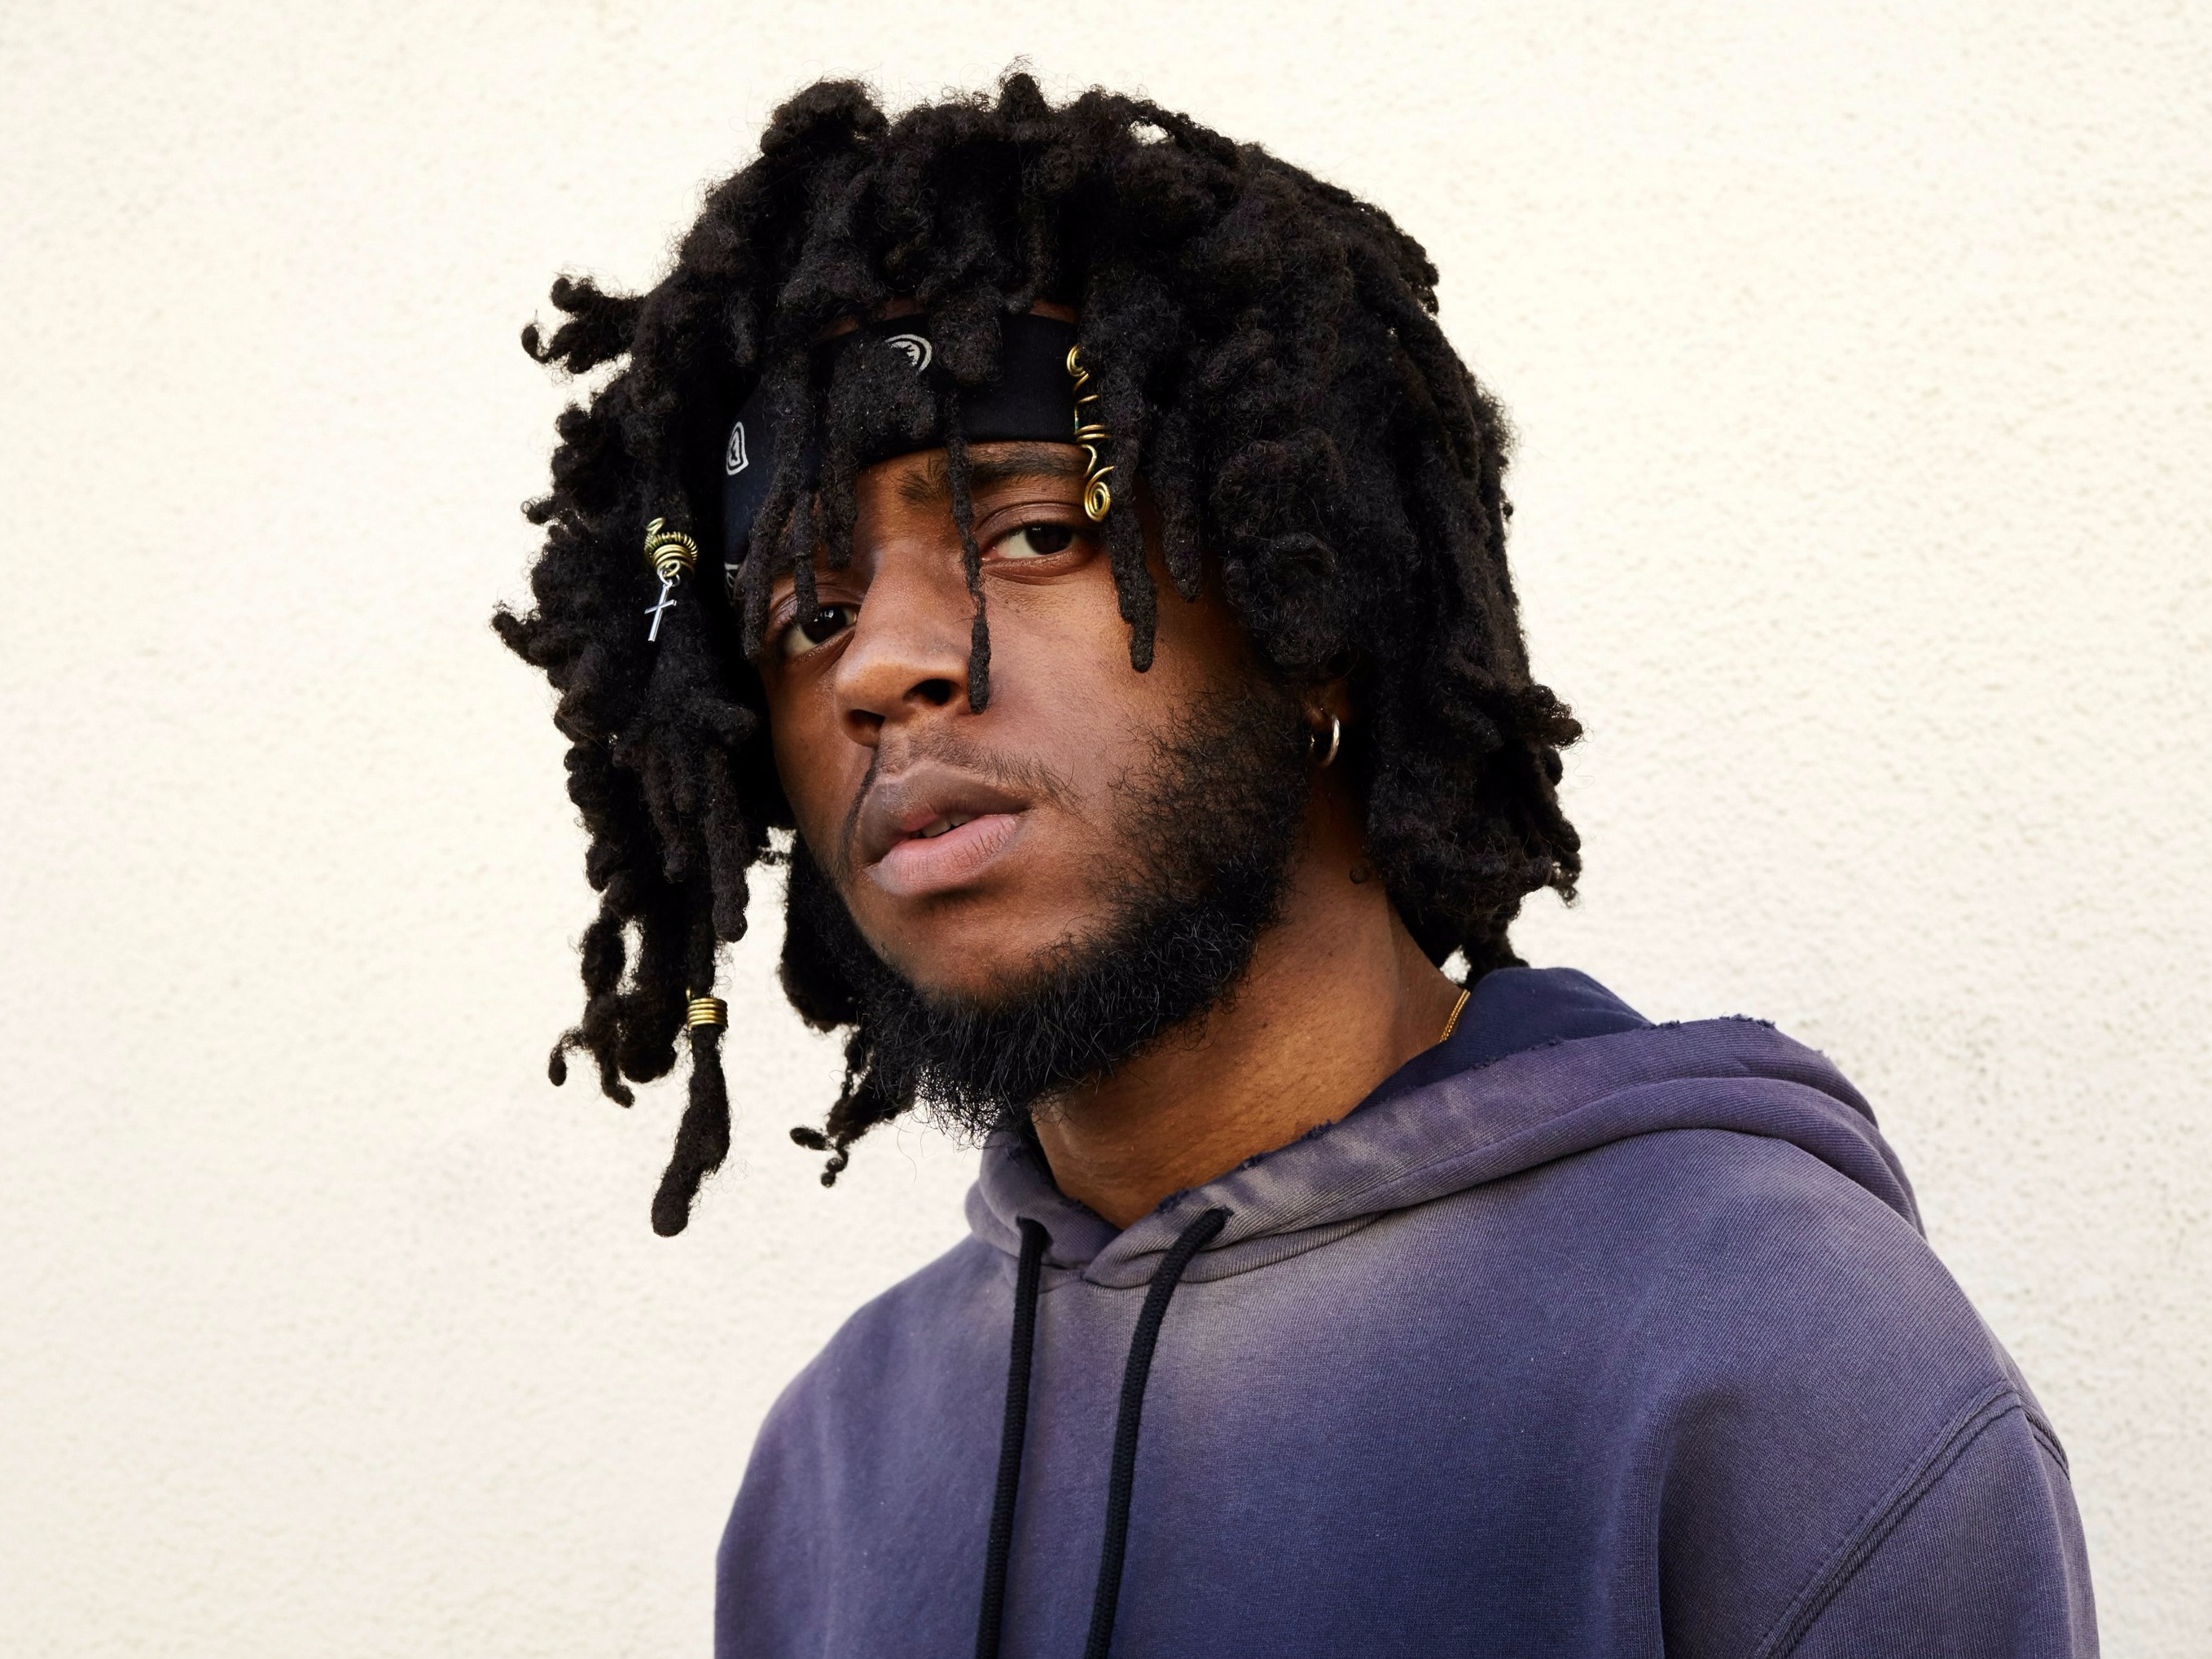 6LACK Drops Deluxe Version Of Debut Album With Some Heavy Features